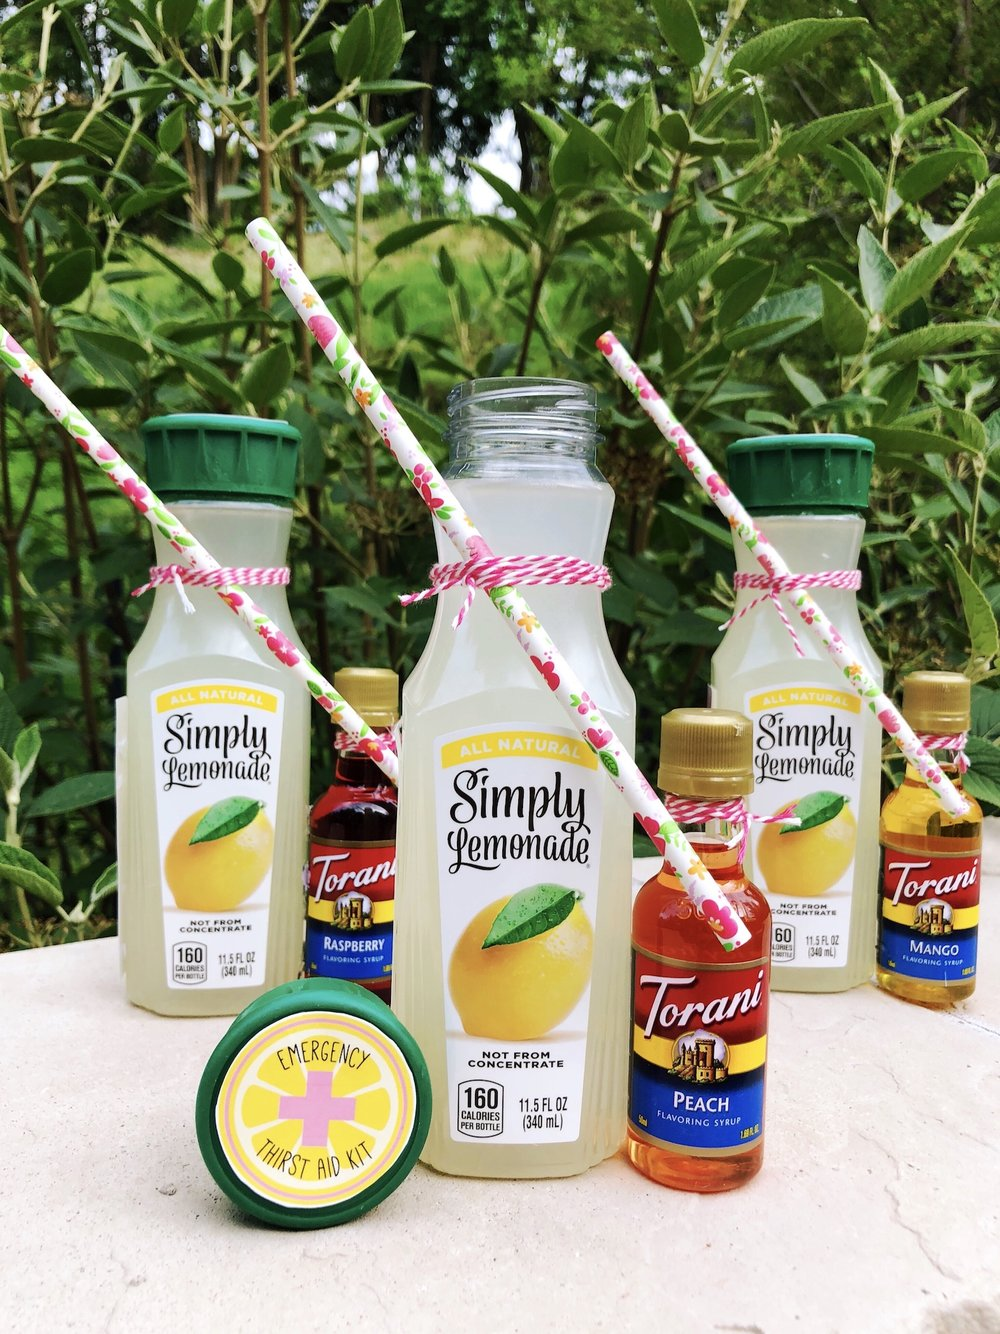 Summer Lemonade Thirst Aid Kit_Party Favor_Drink Ideas_Design Organize Party.jpg